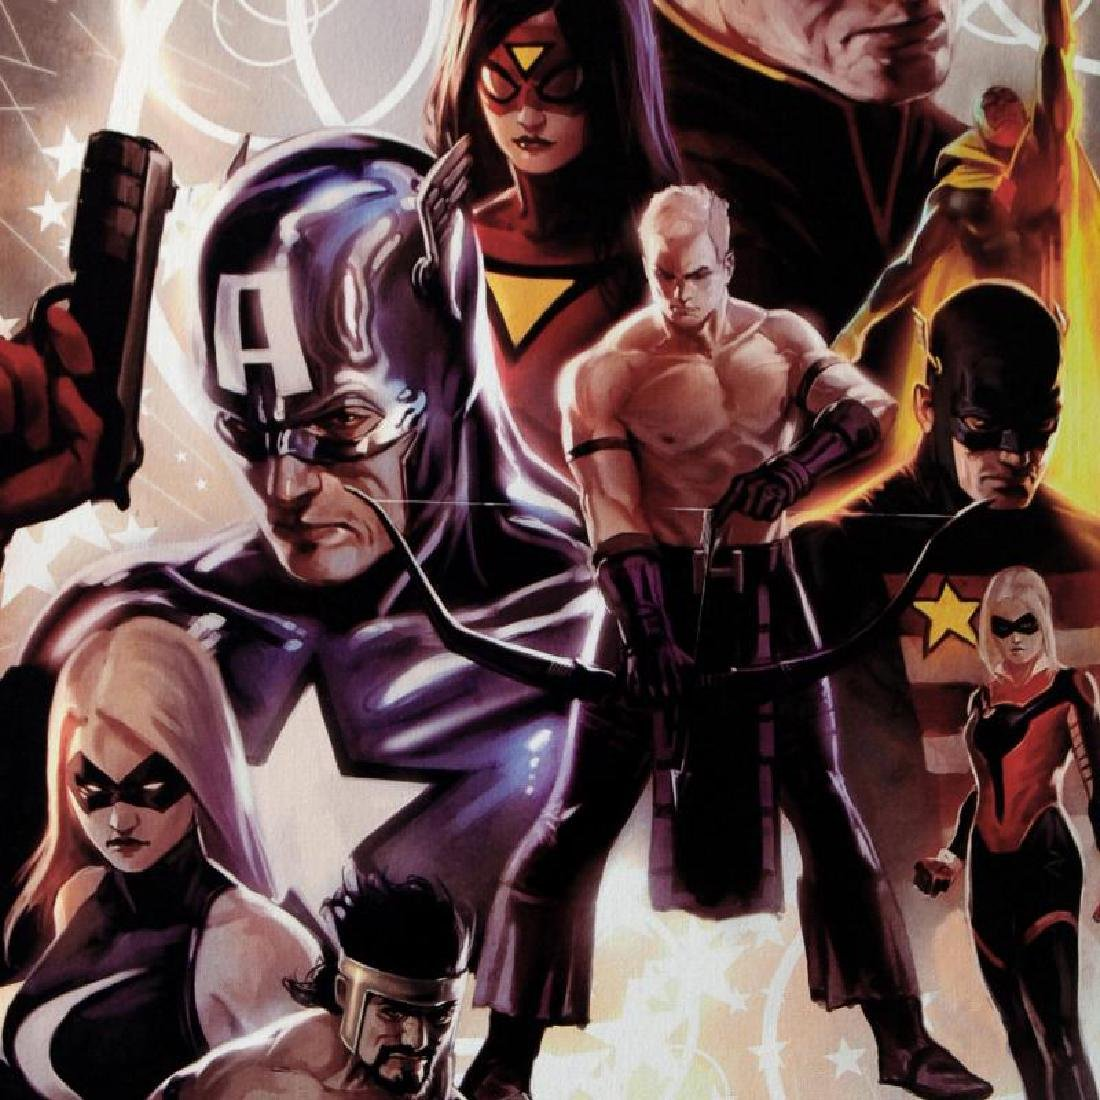 The Mighty Avengers #30 by Marvel Comics - 2